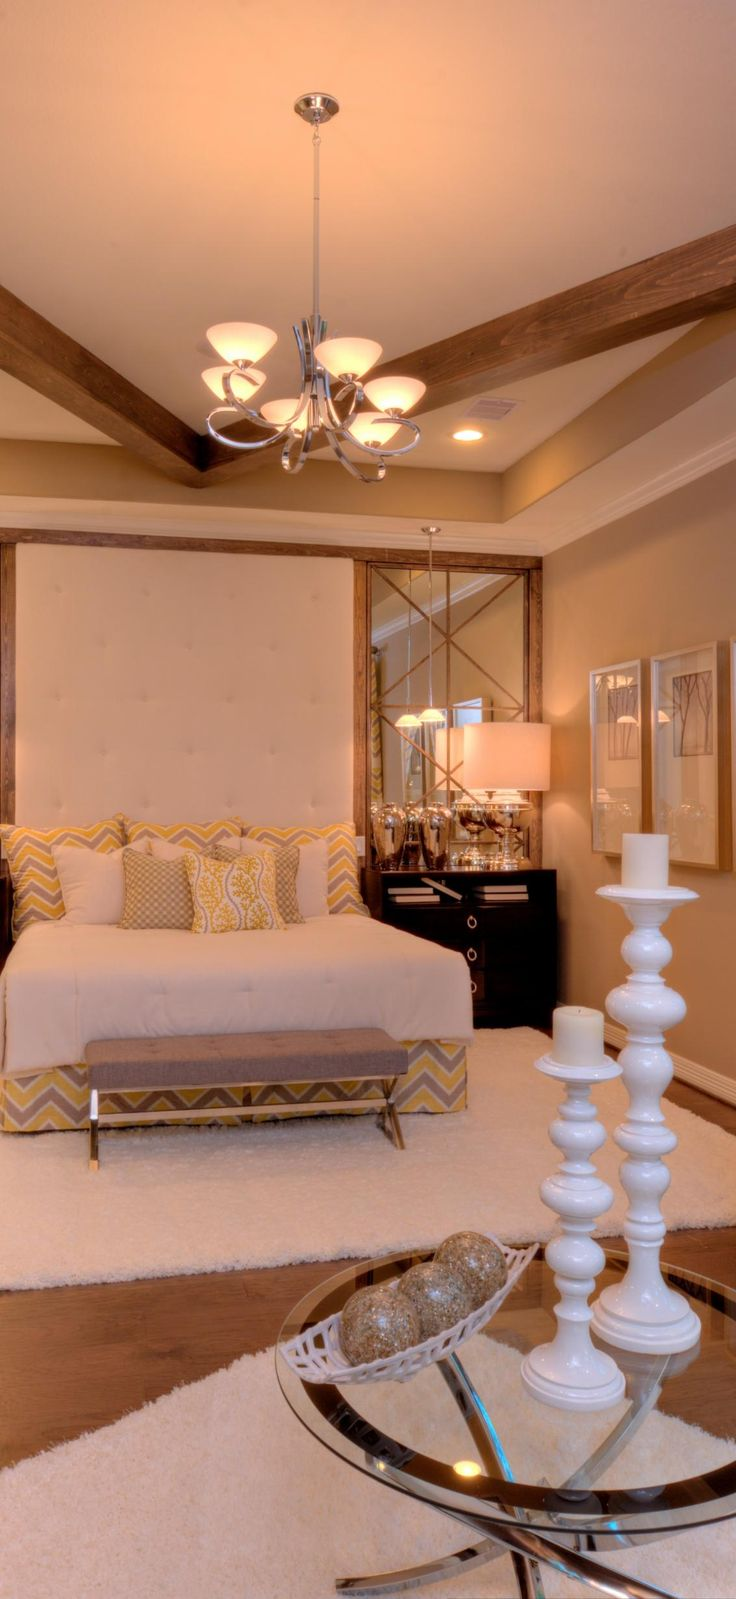 Enjoy your very own extensive master bedroom